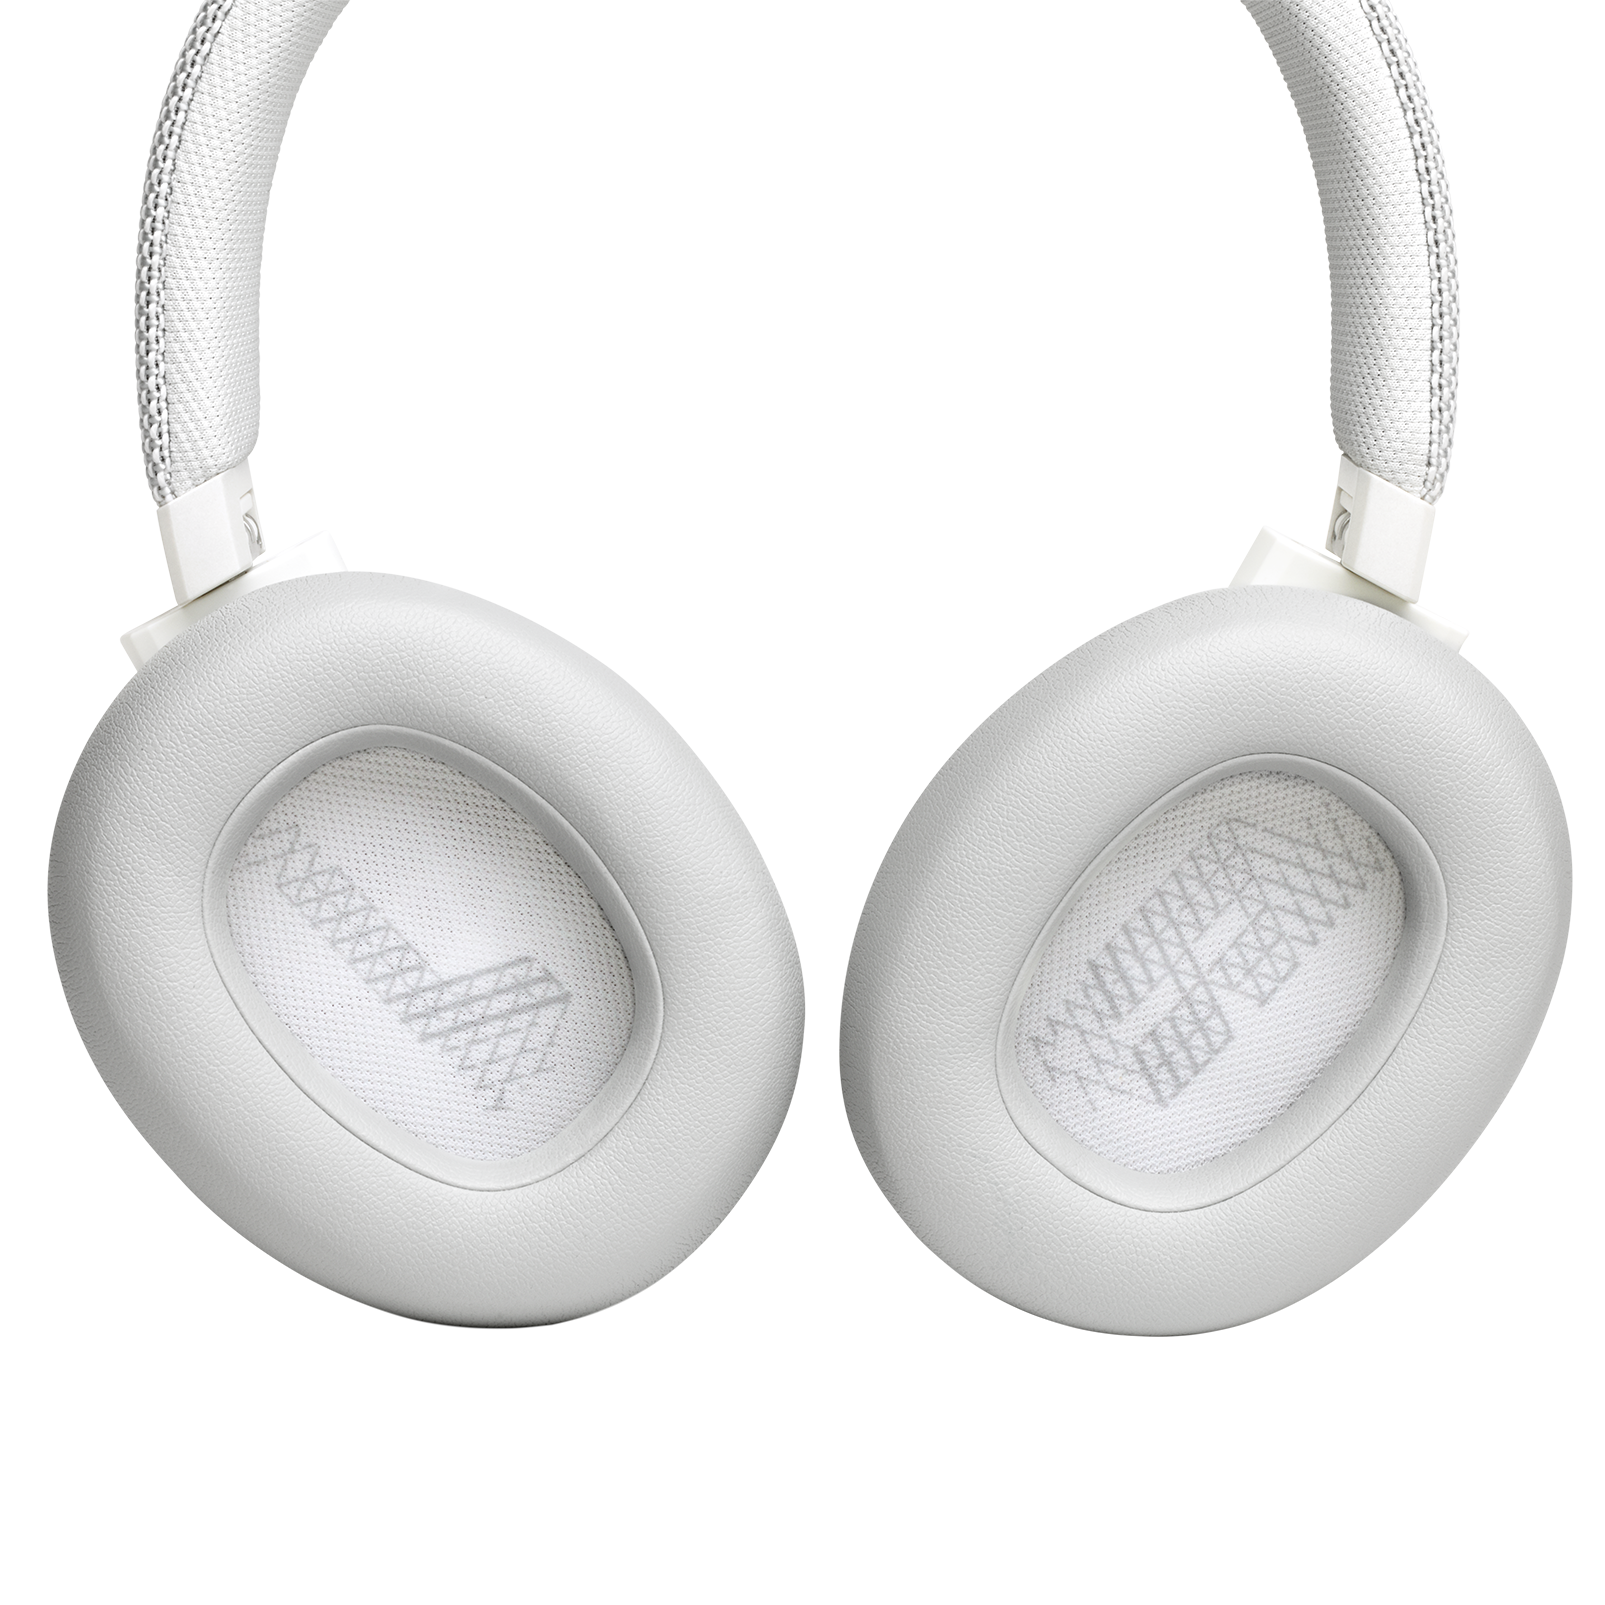 JBL LIVE 650BTNC - White - Wireless Over-Ear Noise-Cancelling Headphones - Detailshot 3